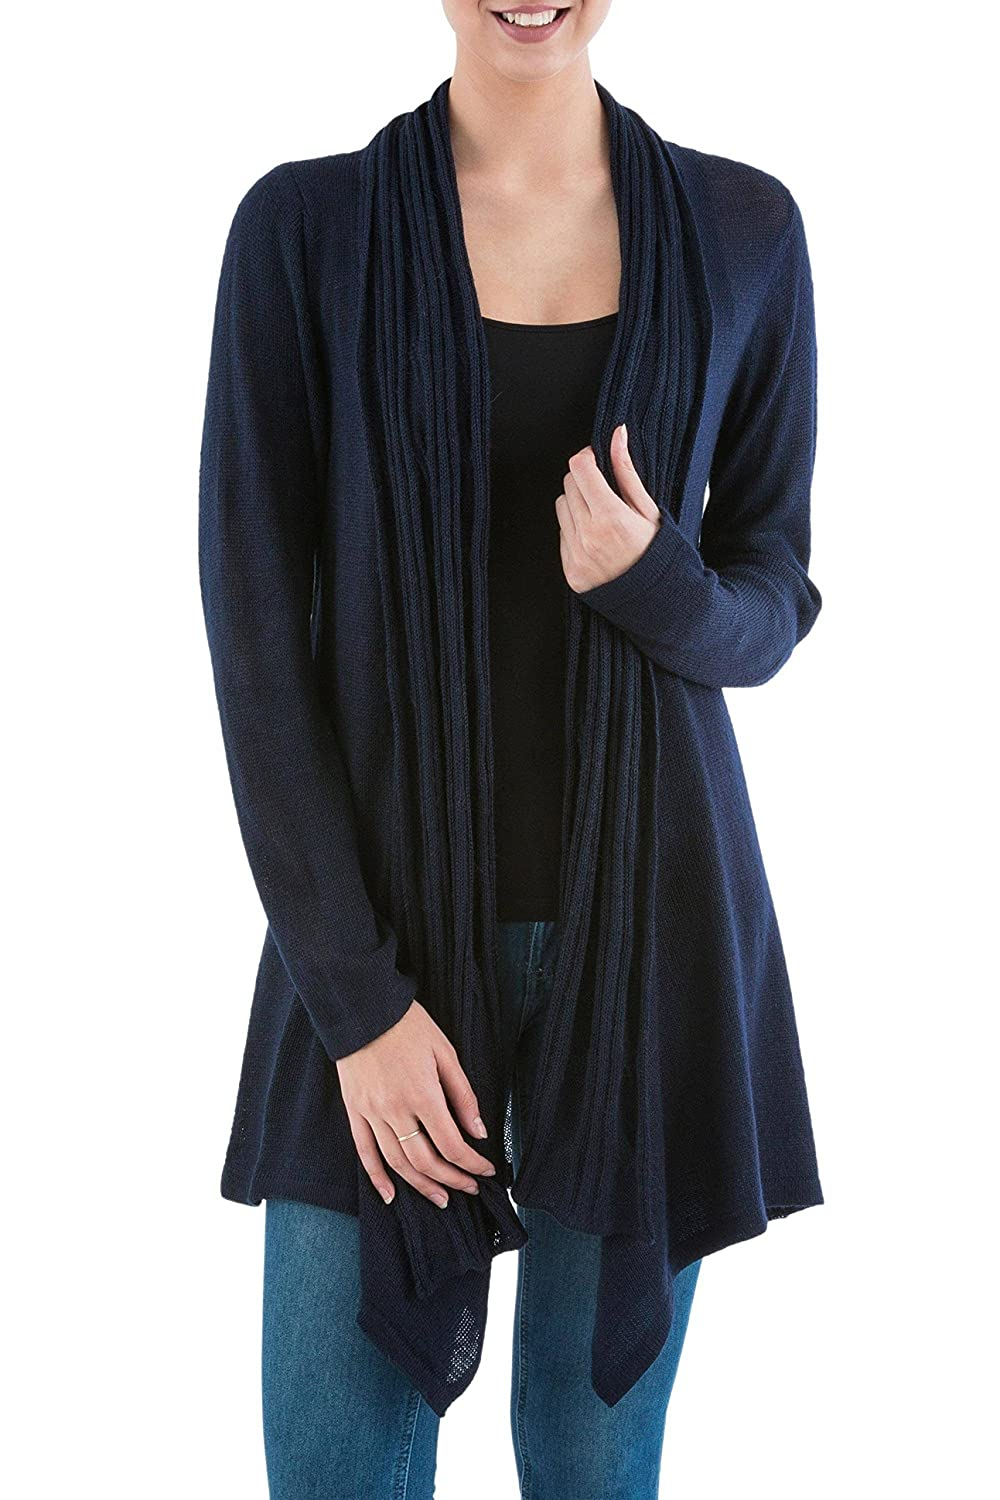 NOVICA Blue 10/% Alpaca Wool Long Sleeves Cardigan Sweater Waterfall Dream